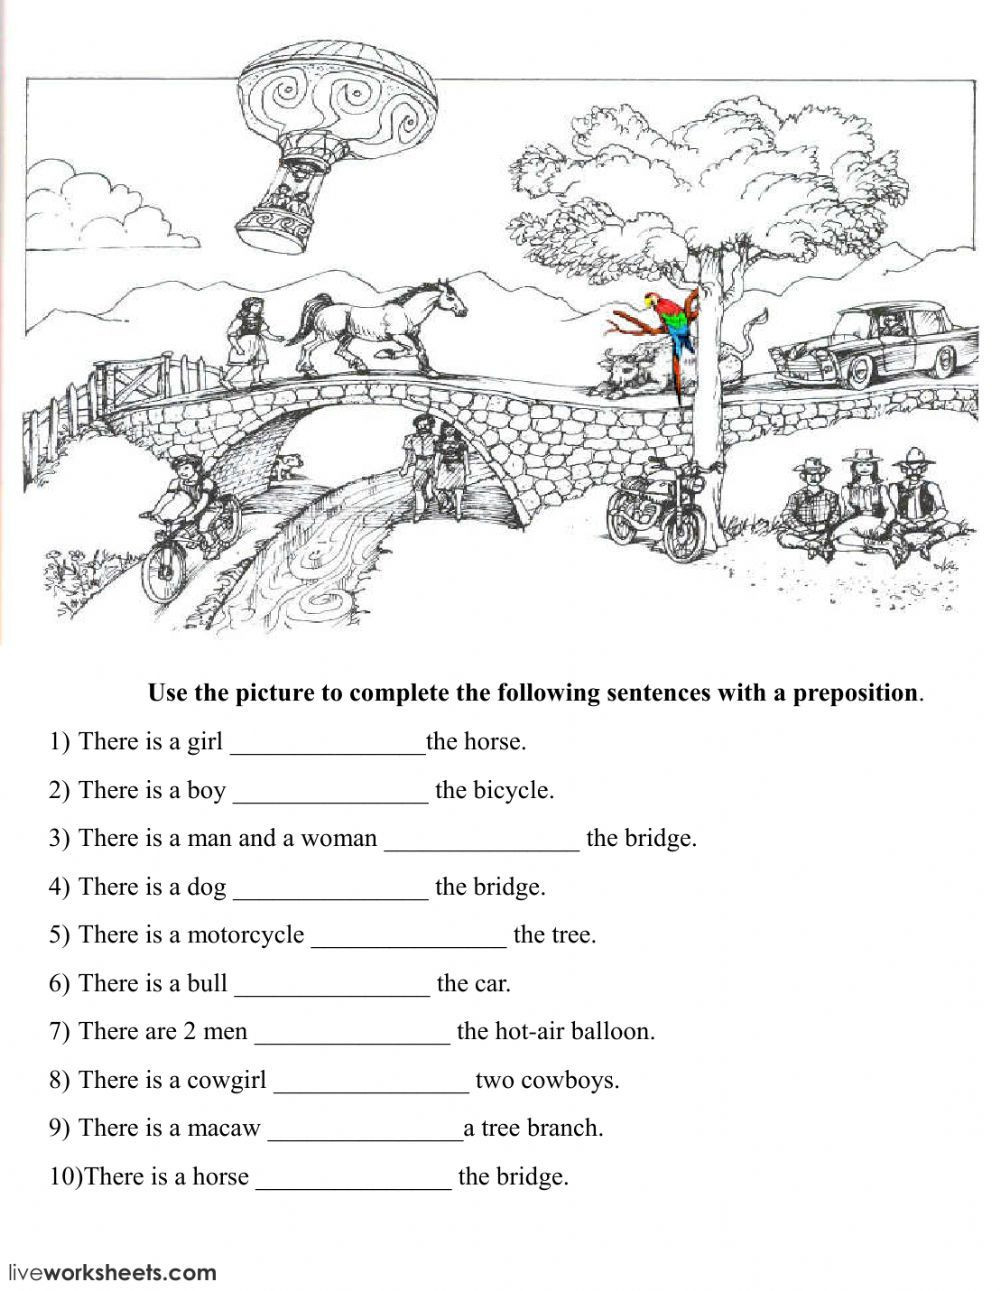 Prepositions Worksheets Middle School Prepositions Of Place Online Exercise and Pdf You Can Do